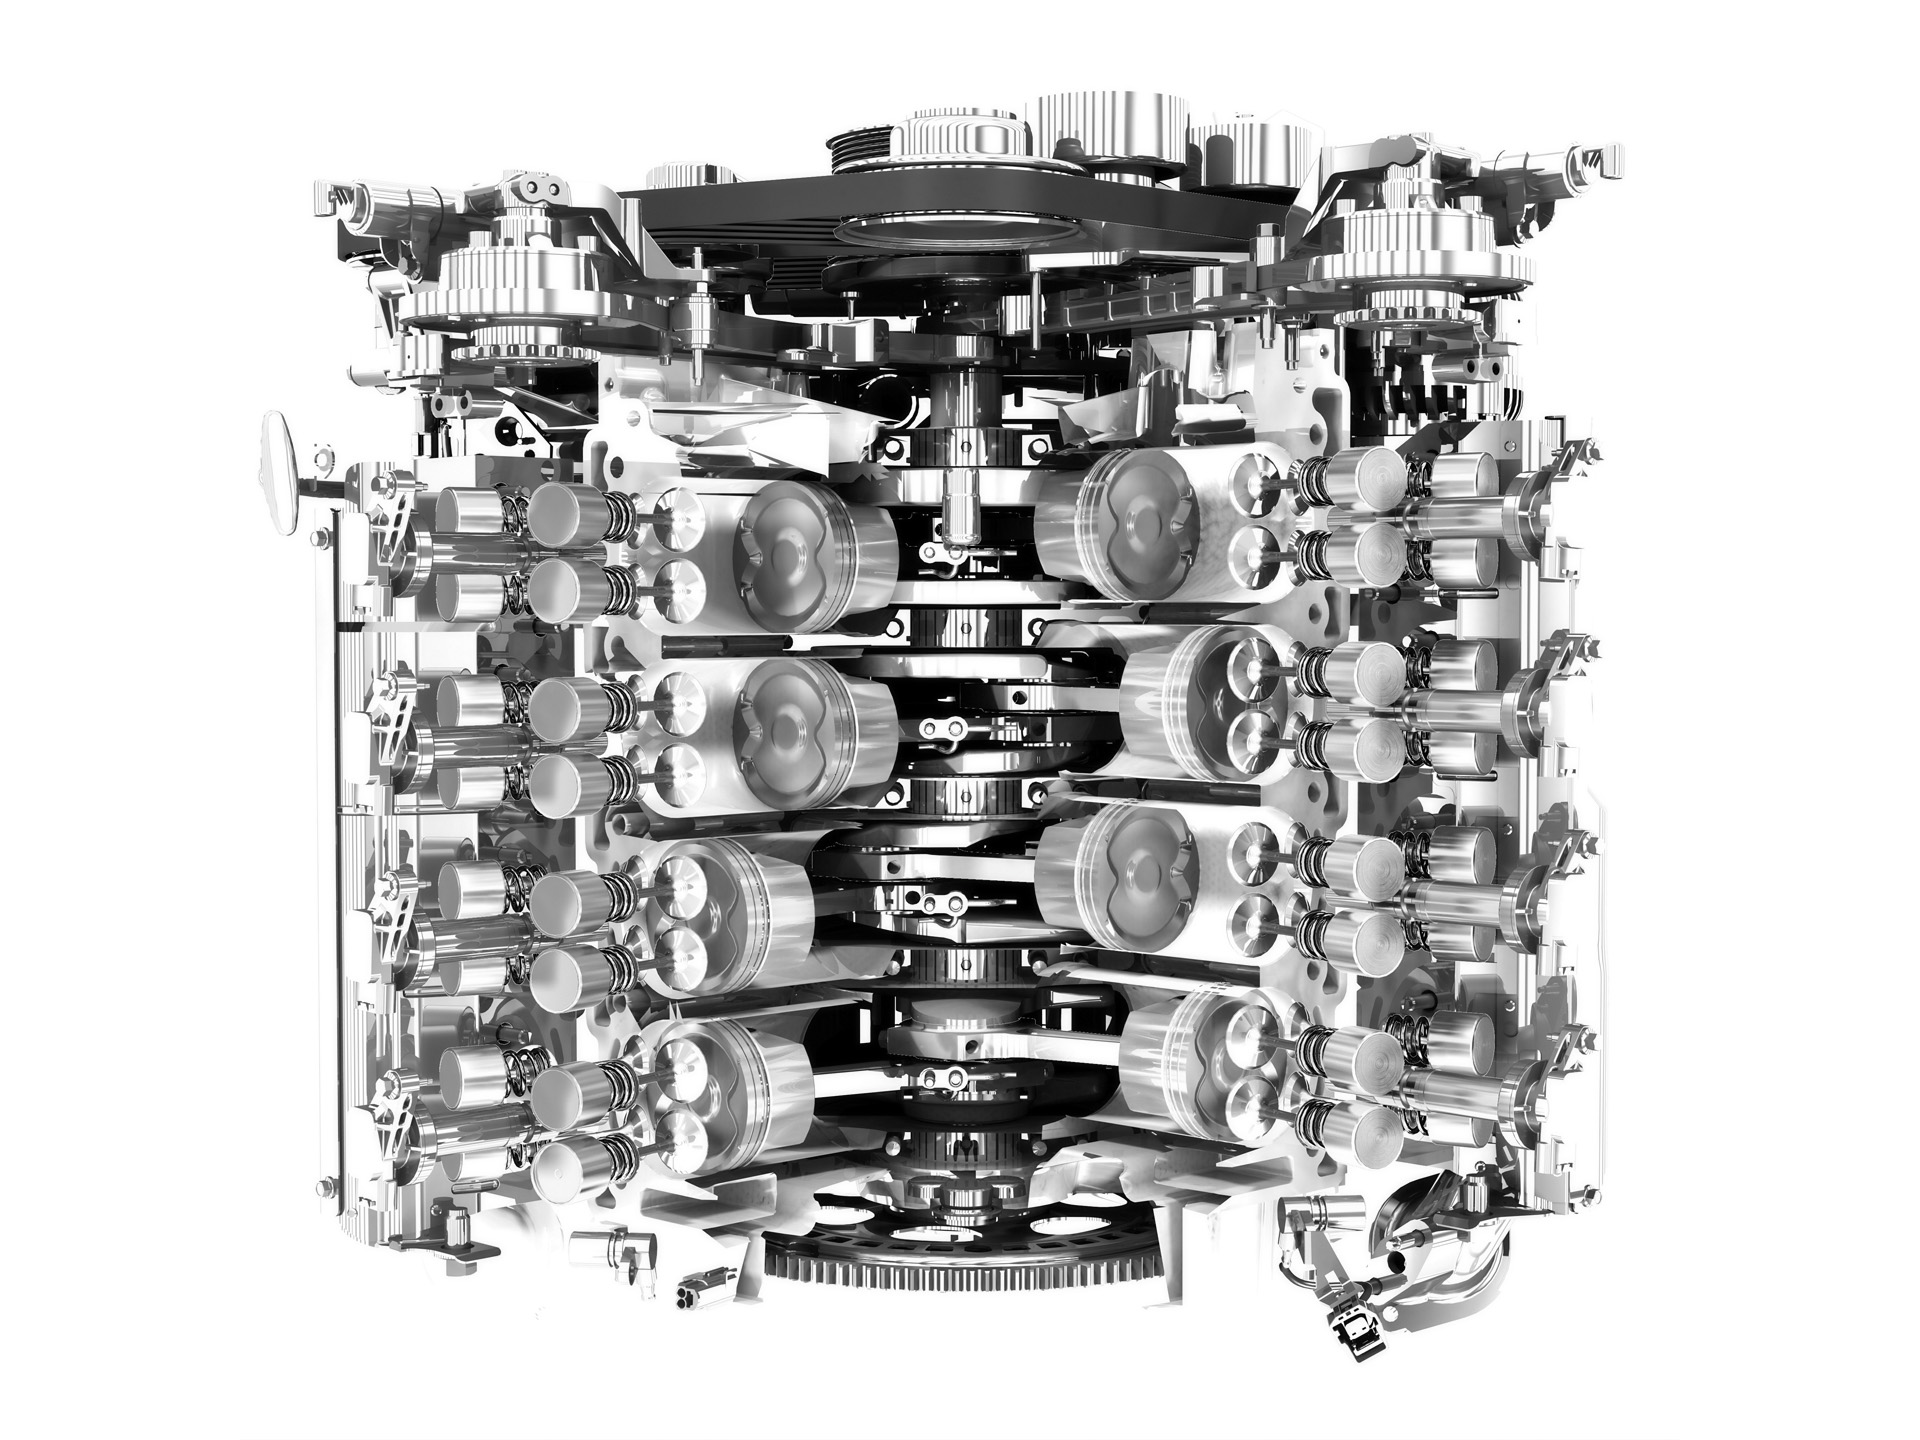 Sample P256c Engine